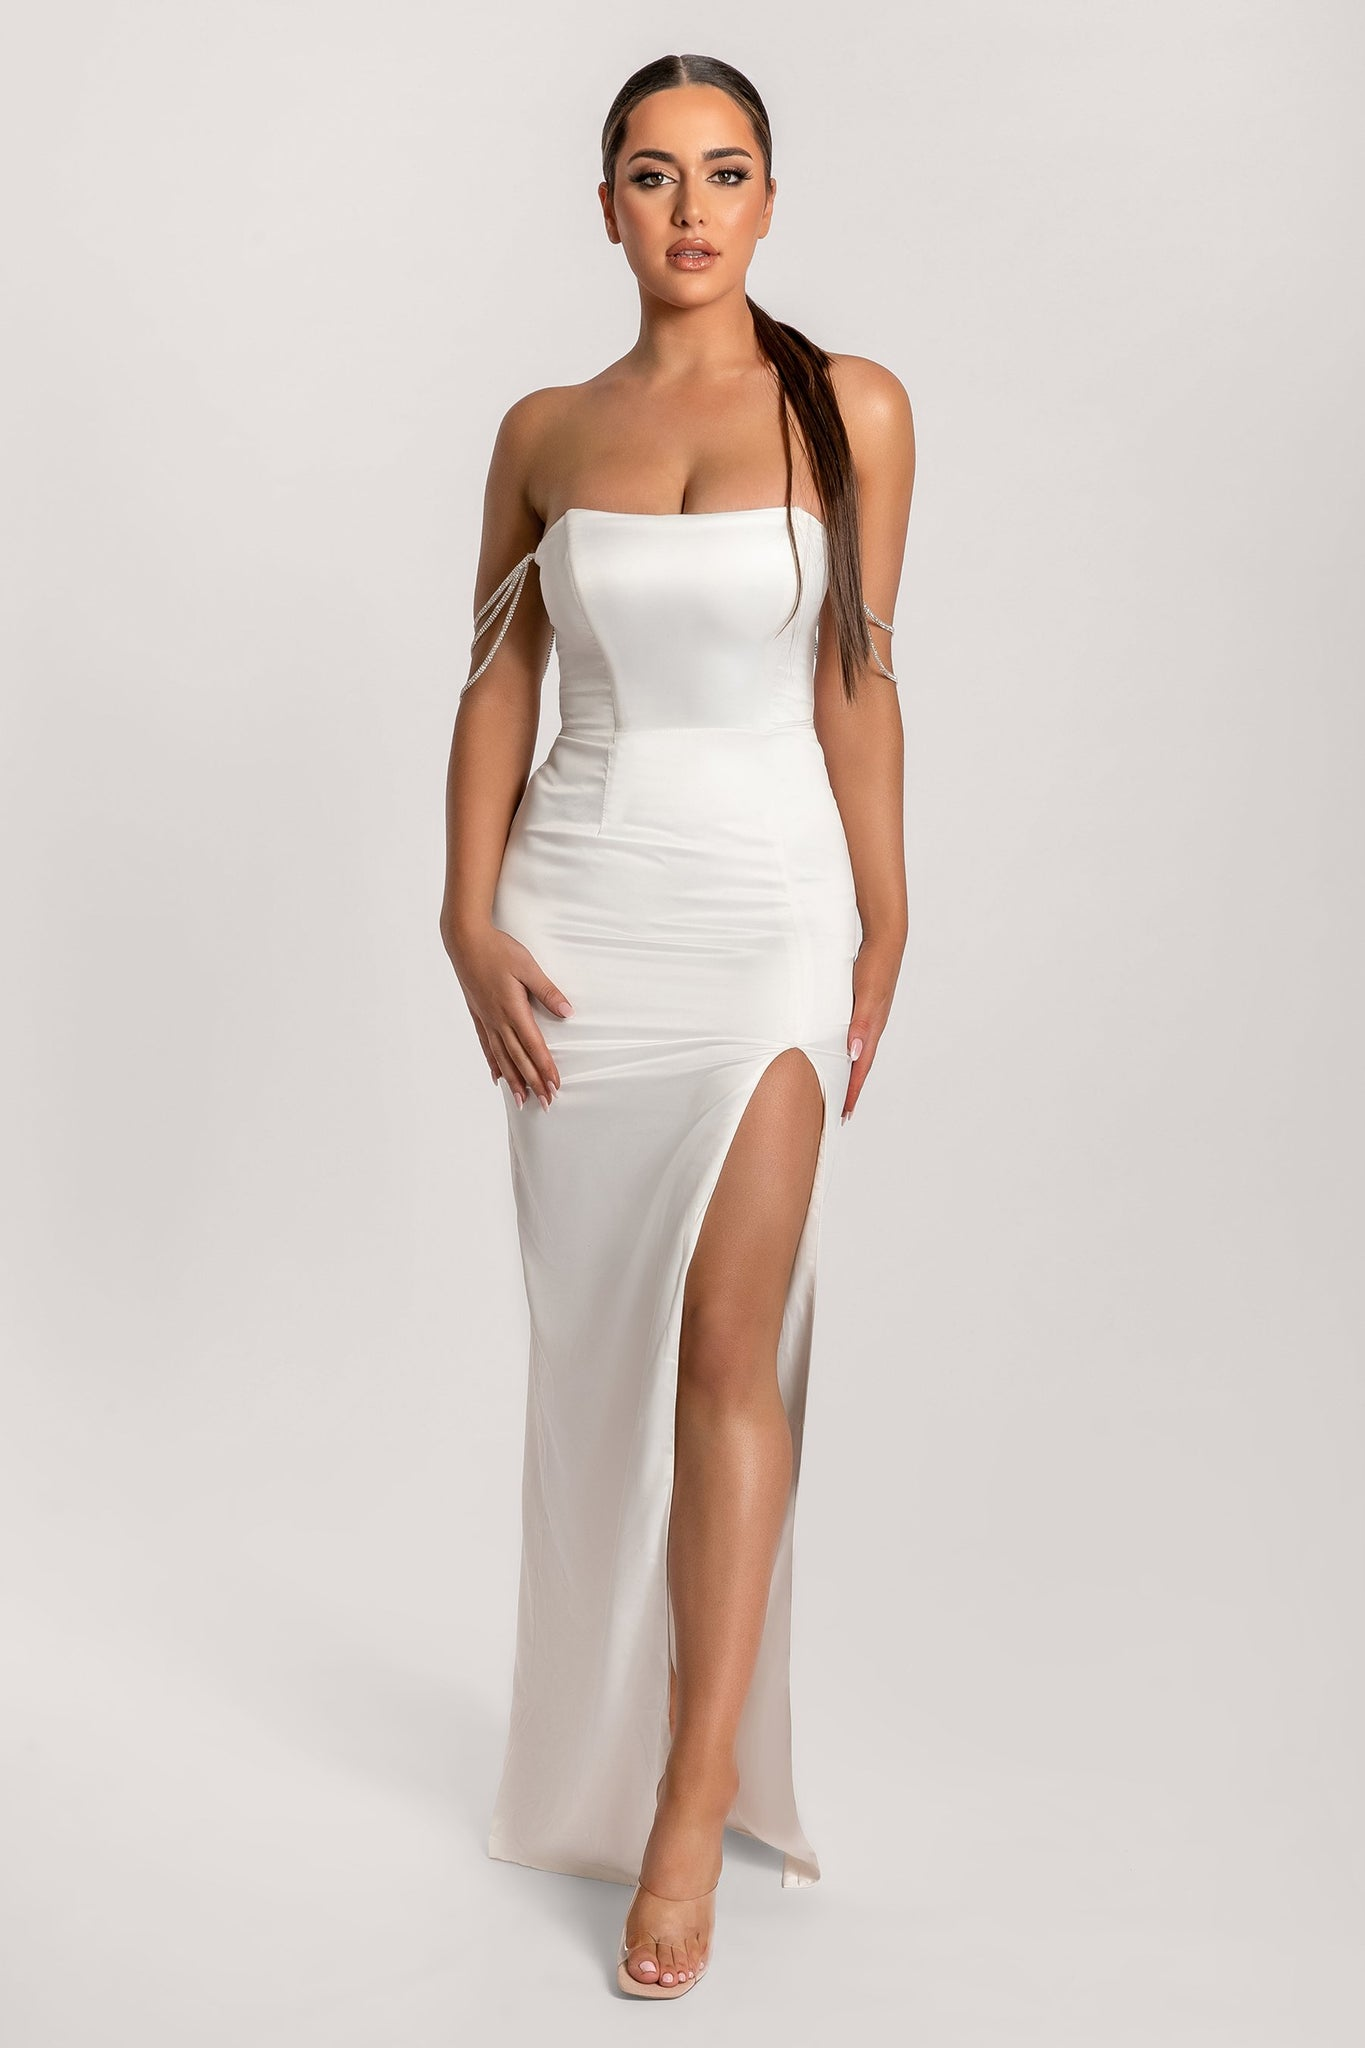 Devon Diamante Drape Strapless Maxi Dress - Ivory - MESHKI